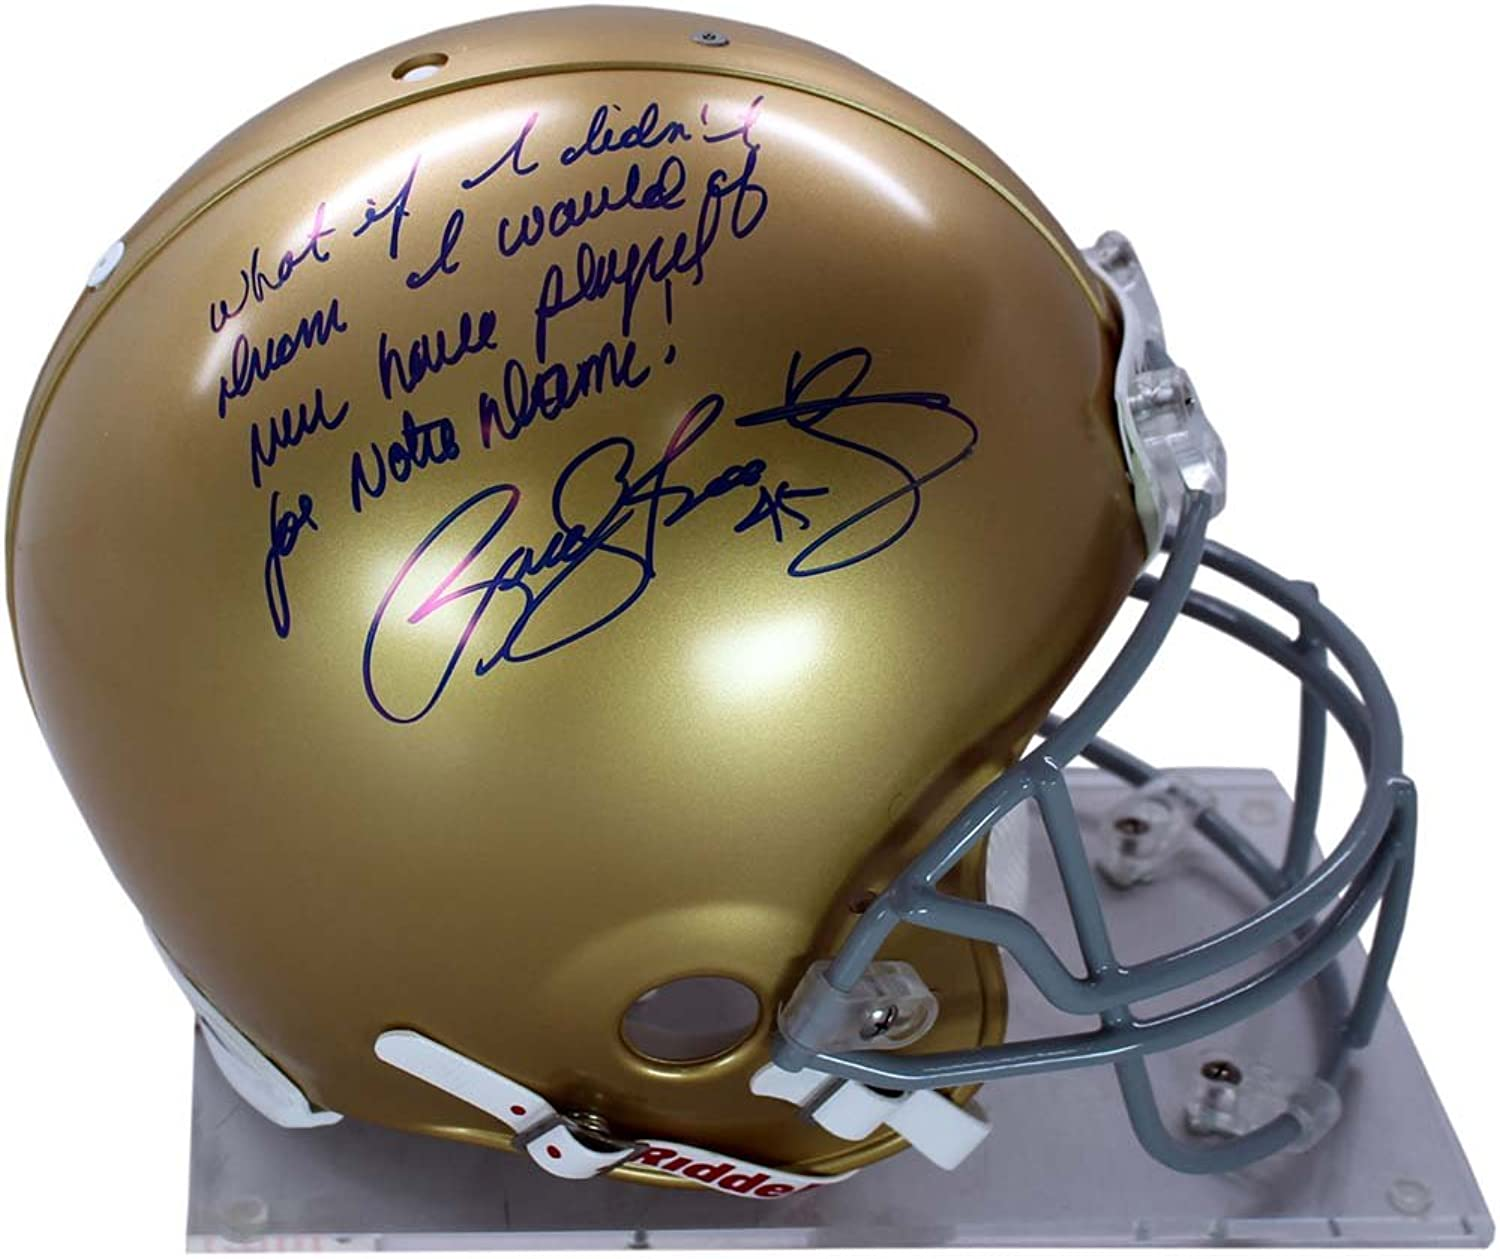 Steiner Sports NCAA Notre Dame Fighting Irish Rudy Ruettiger Signed Authentic Full Size Helmet with What If I Didn't Dream I Would Have Never Played for Notre Dame Inscribed